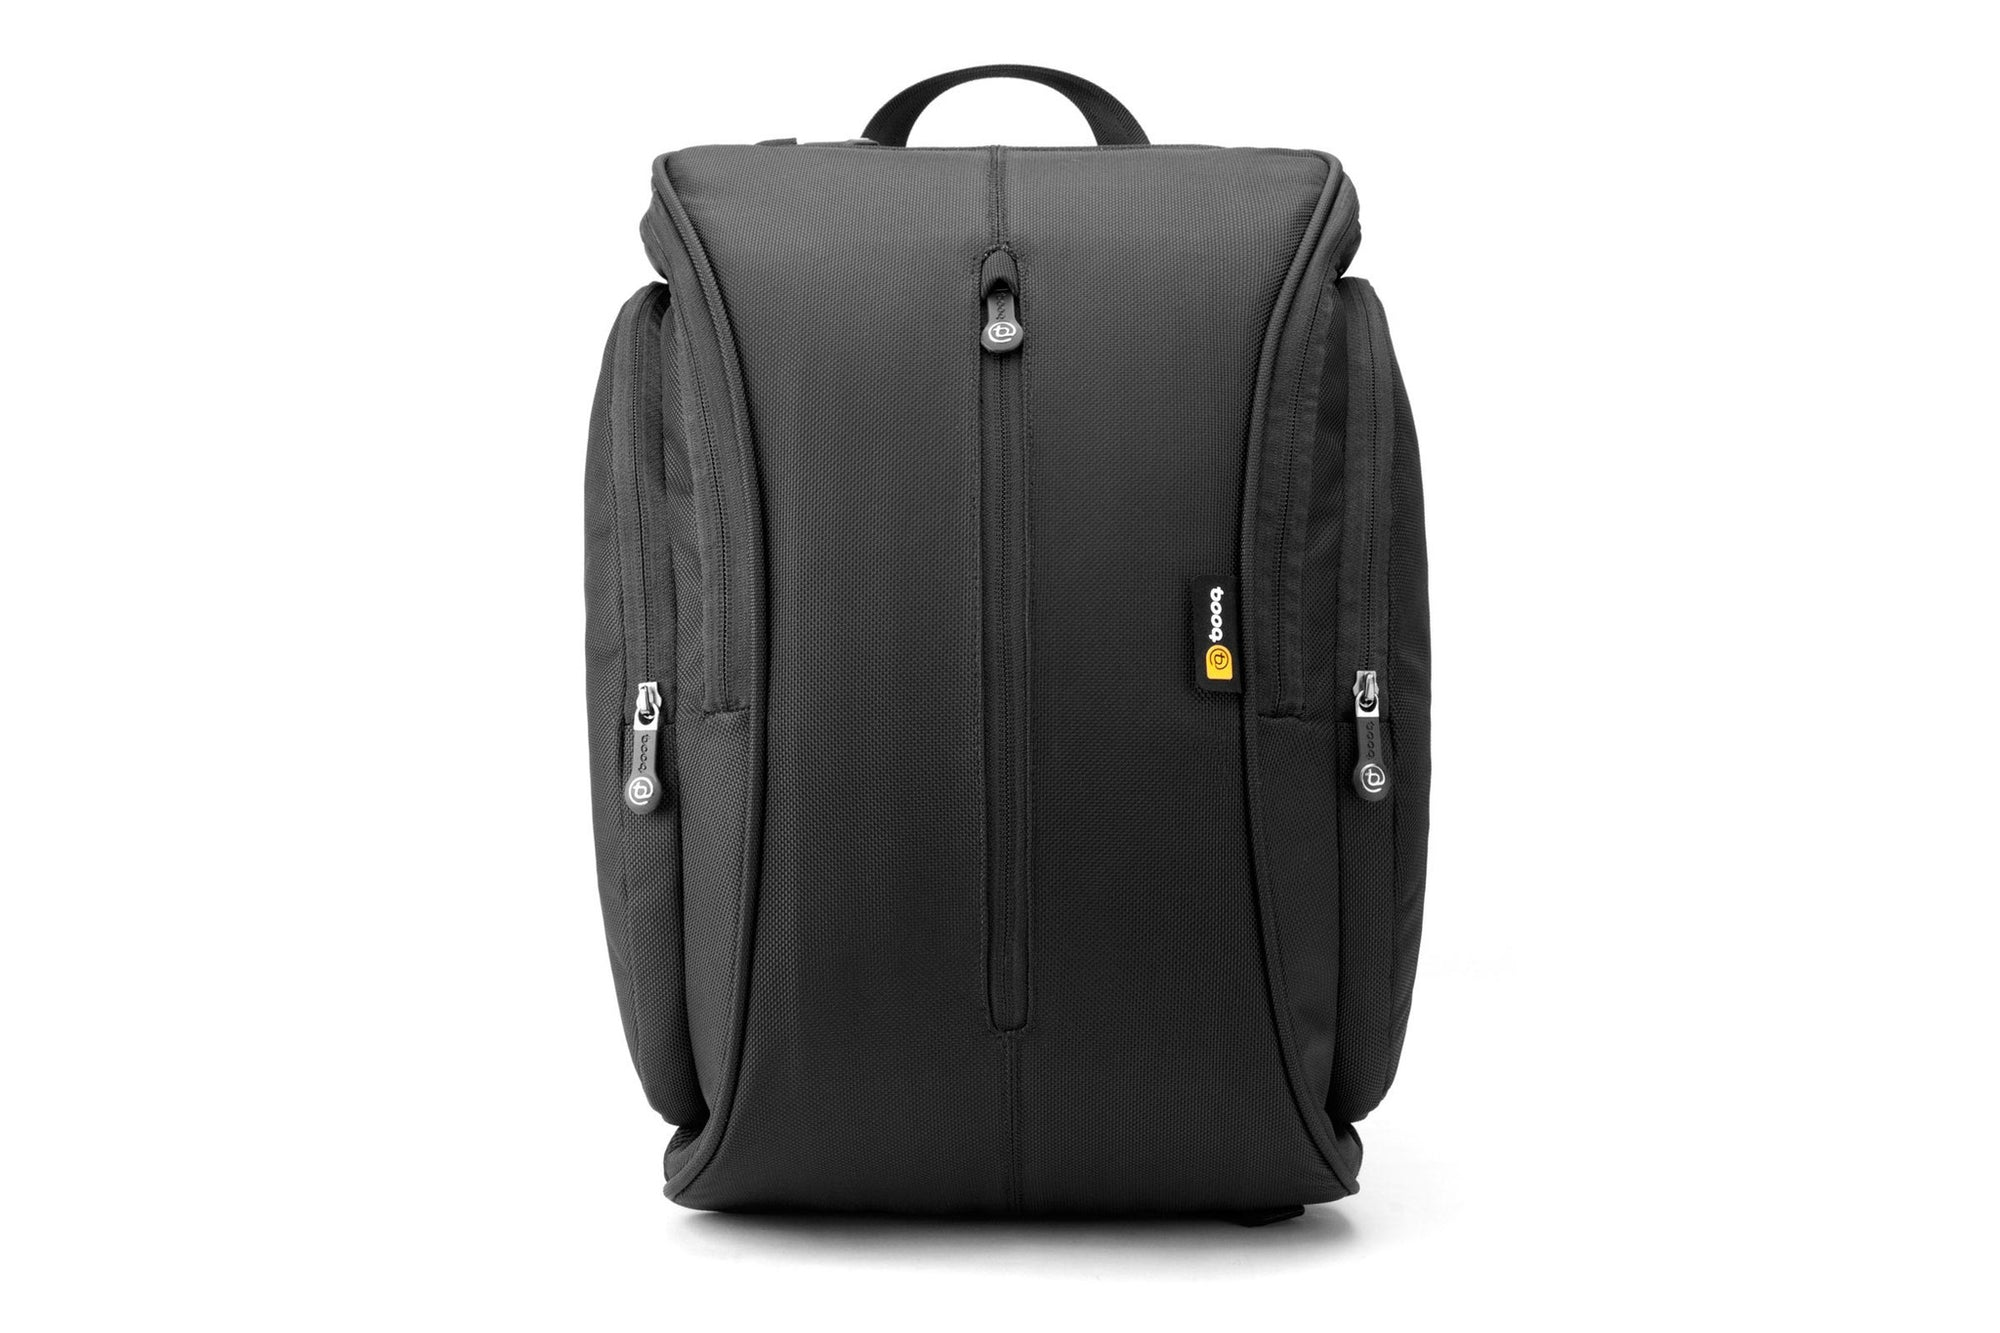 Booq Boa Squeeze Modern MacBook Bag - booqbags bd9283a7d9a2